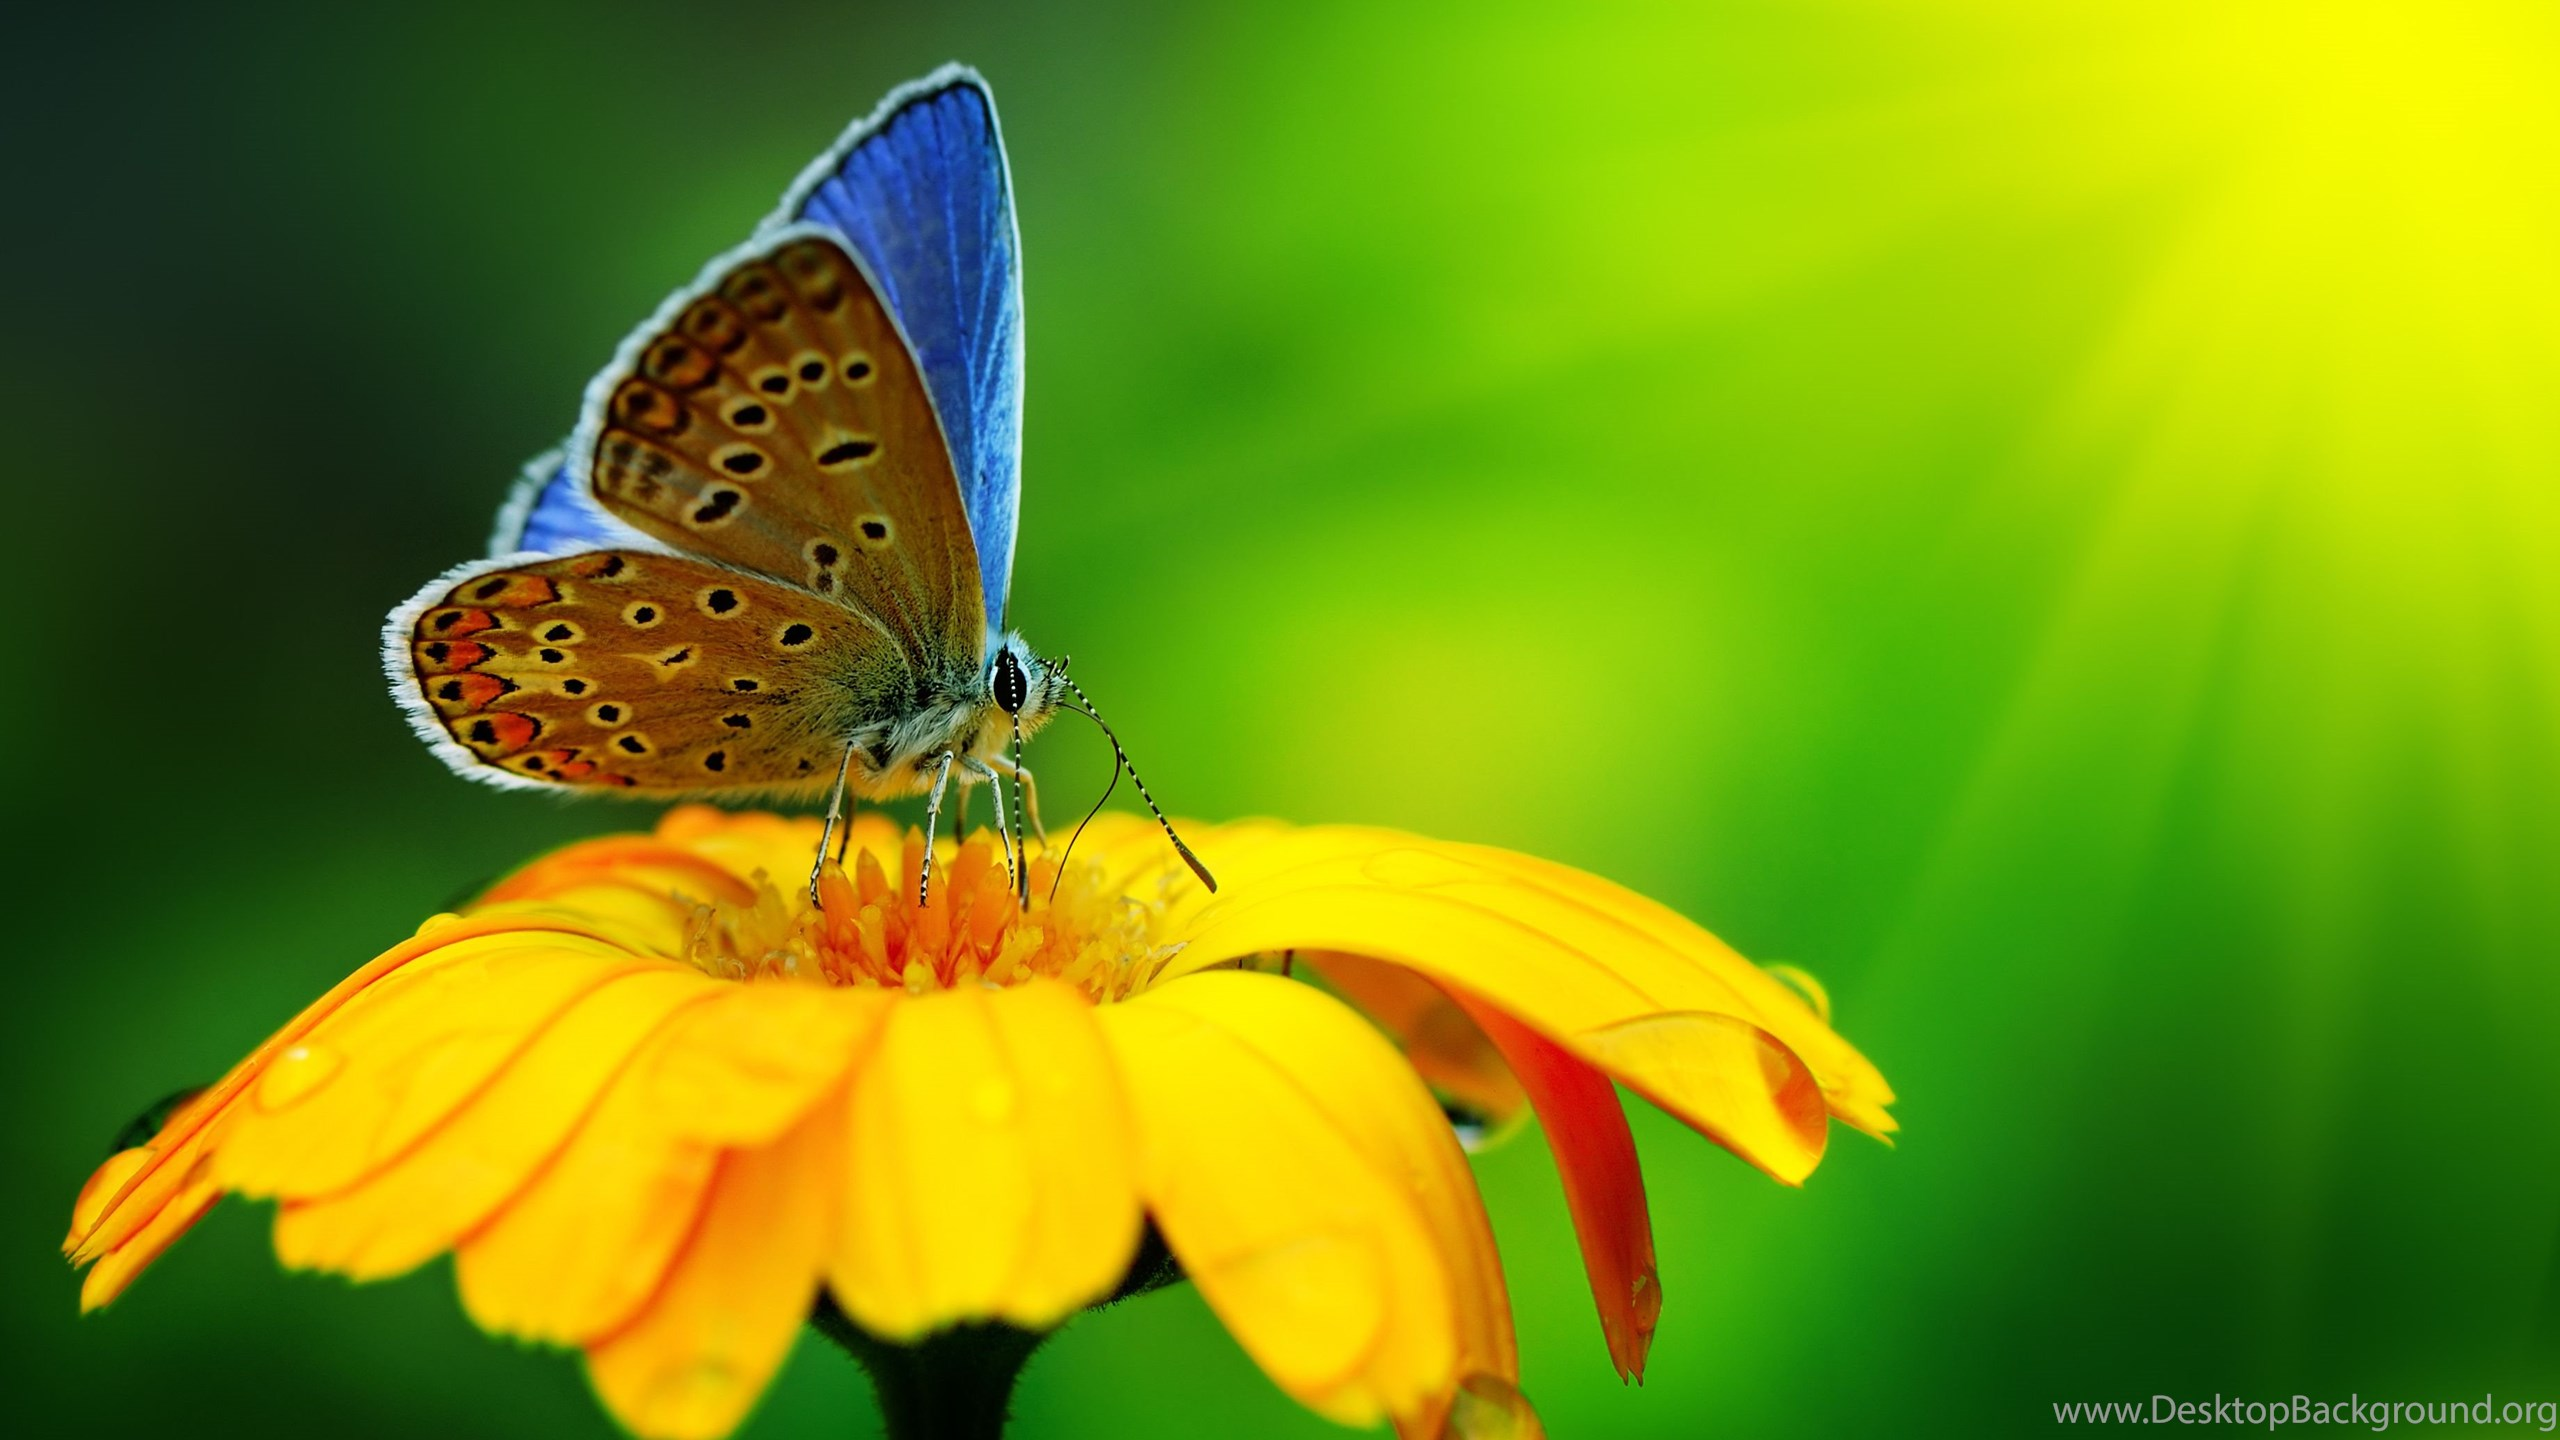 Butterfly On Yellow Color Flowers Hd Wallpapers Desktop Background